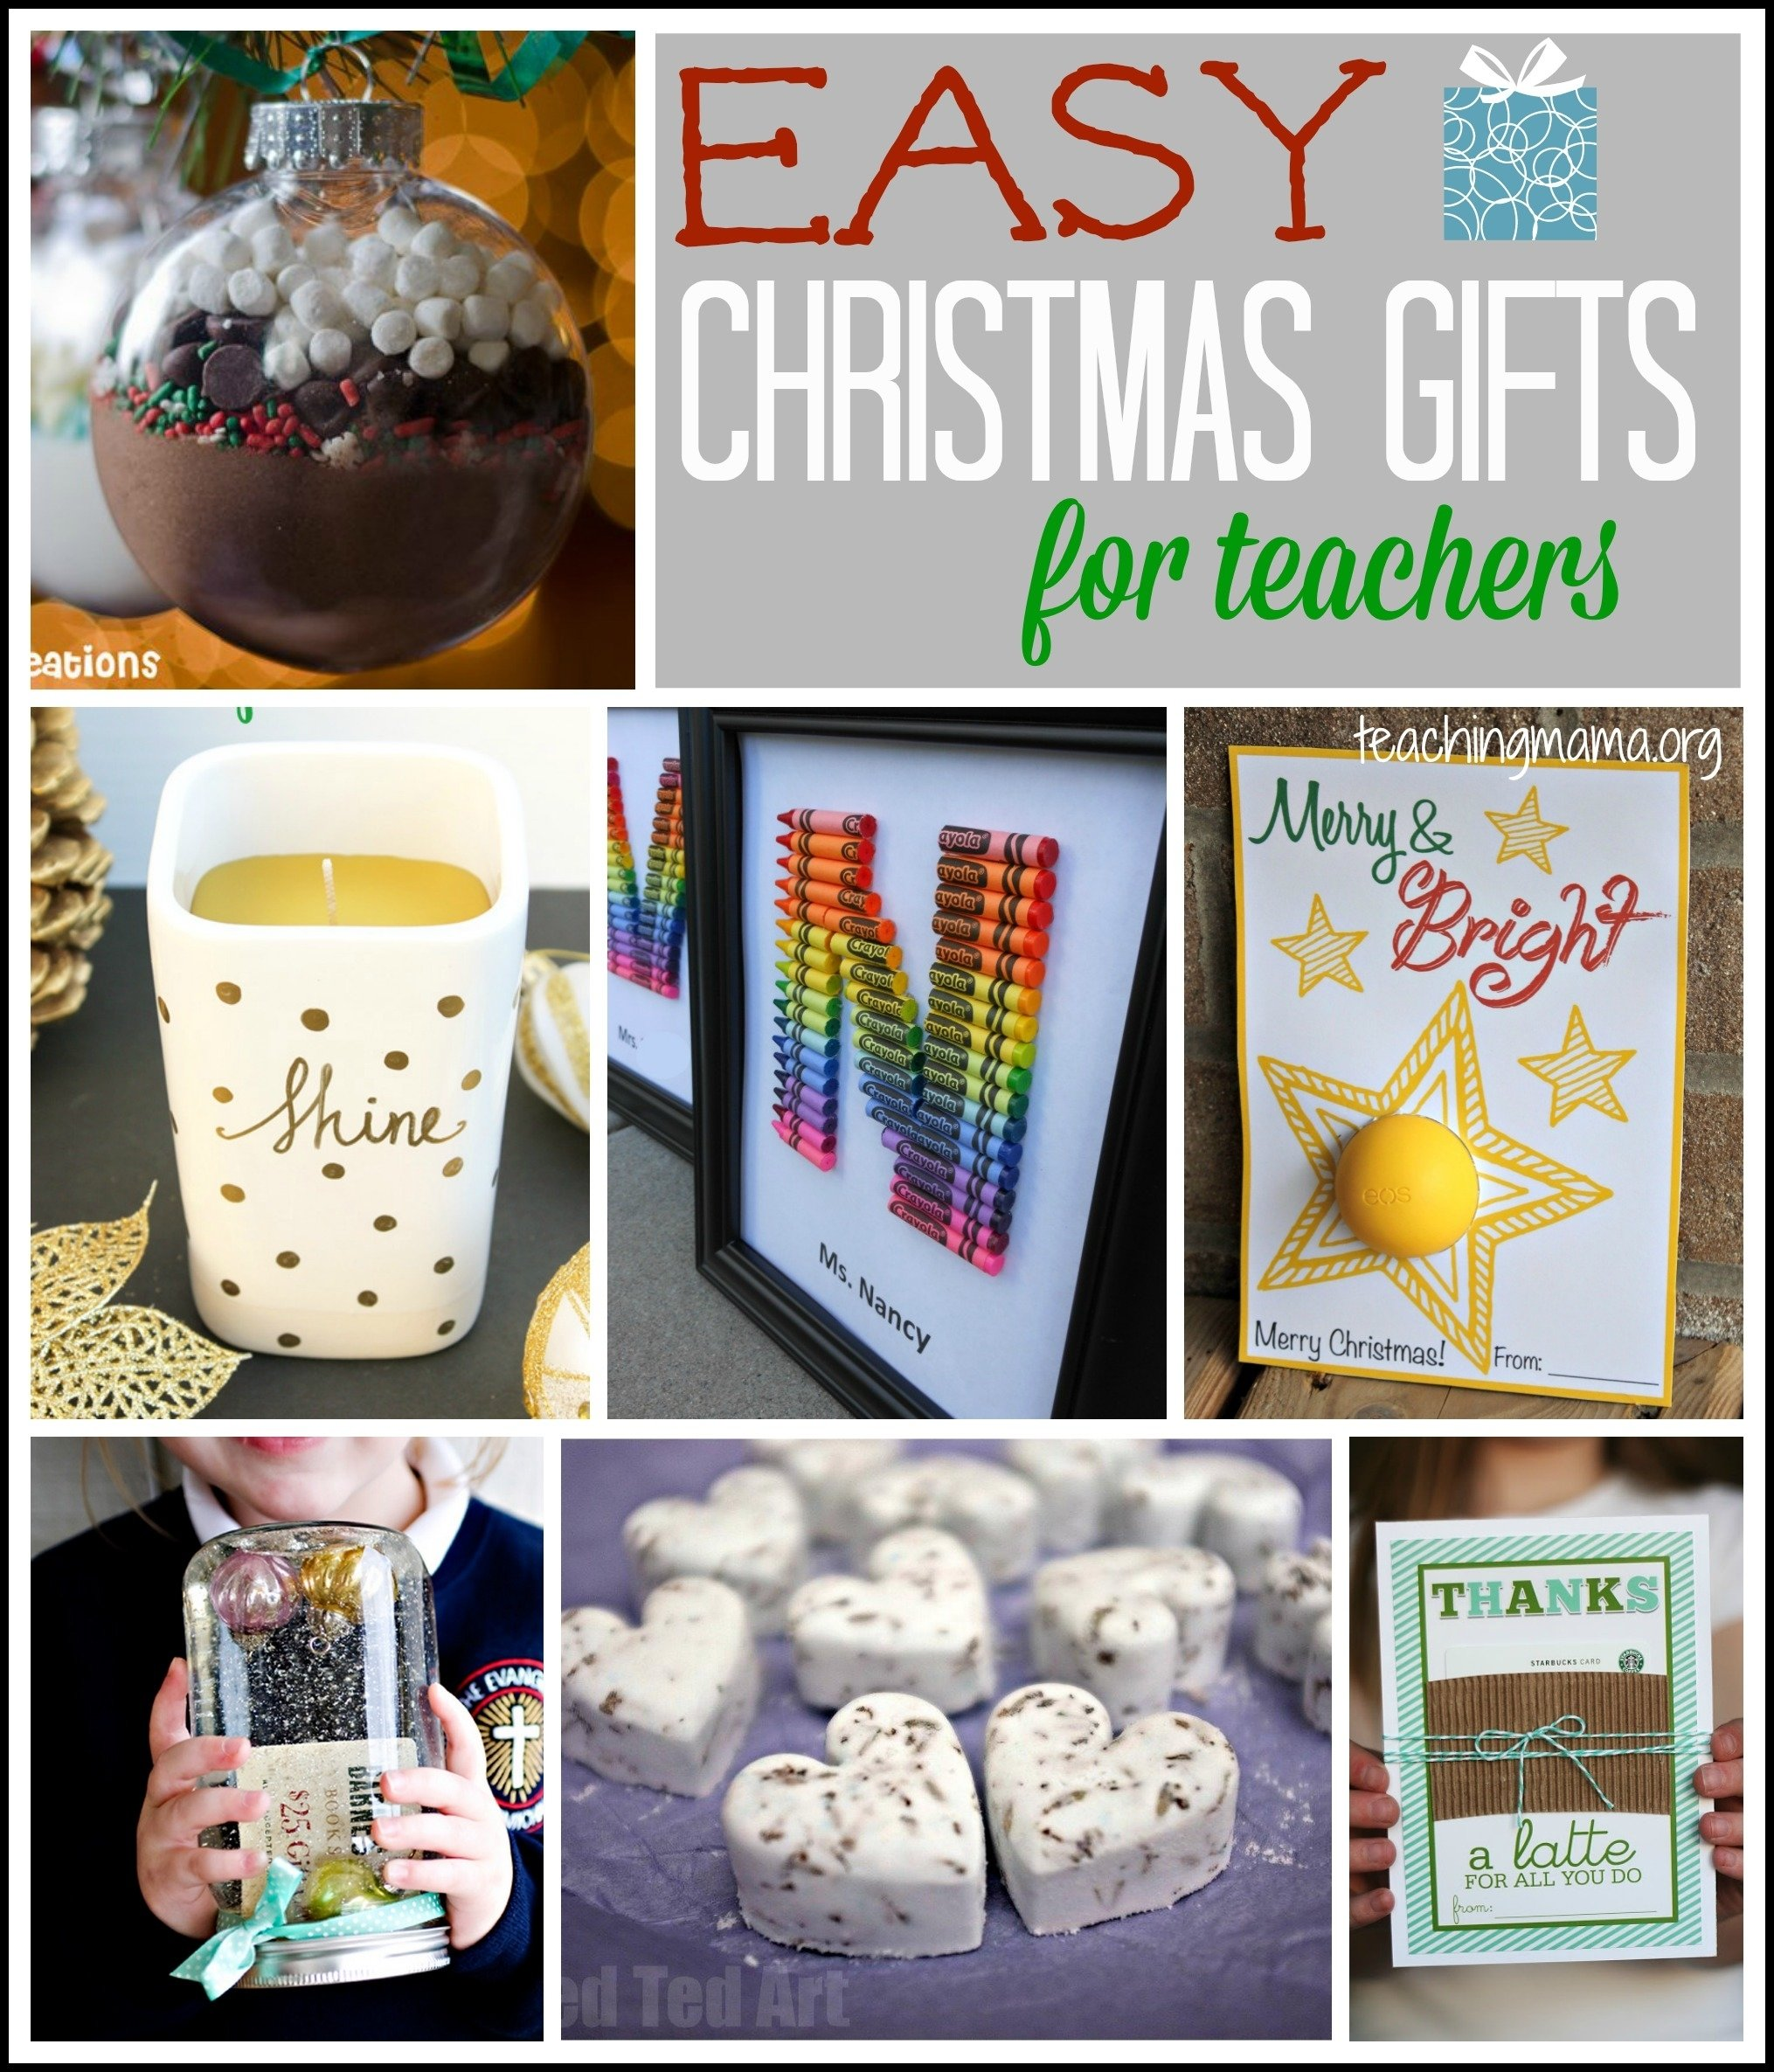 10 Fashionable Holiday Gift Ideas For Teachers easy christmas gifts for teachers 1 2021